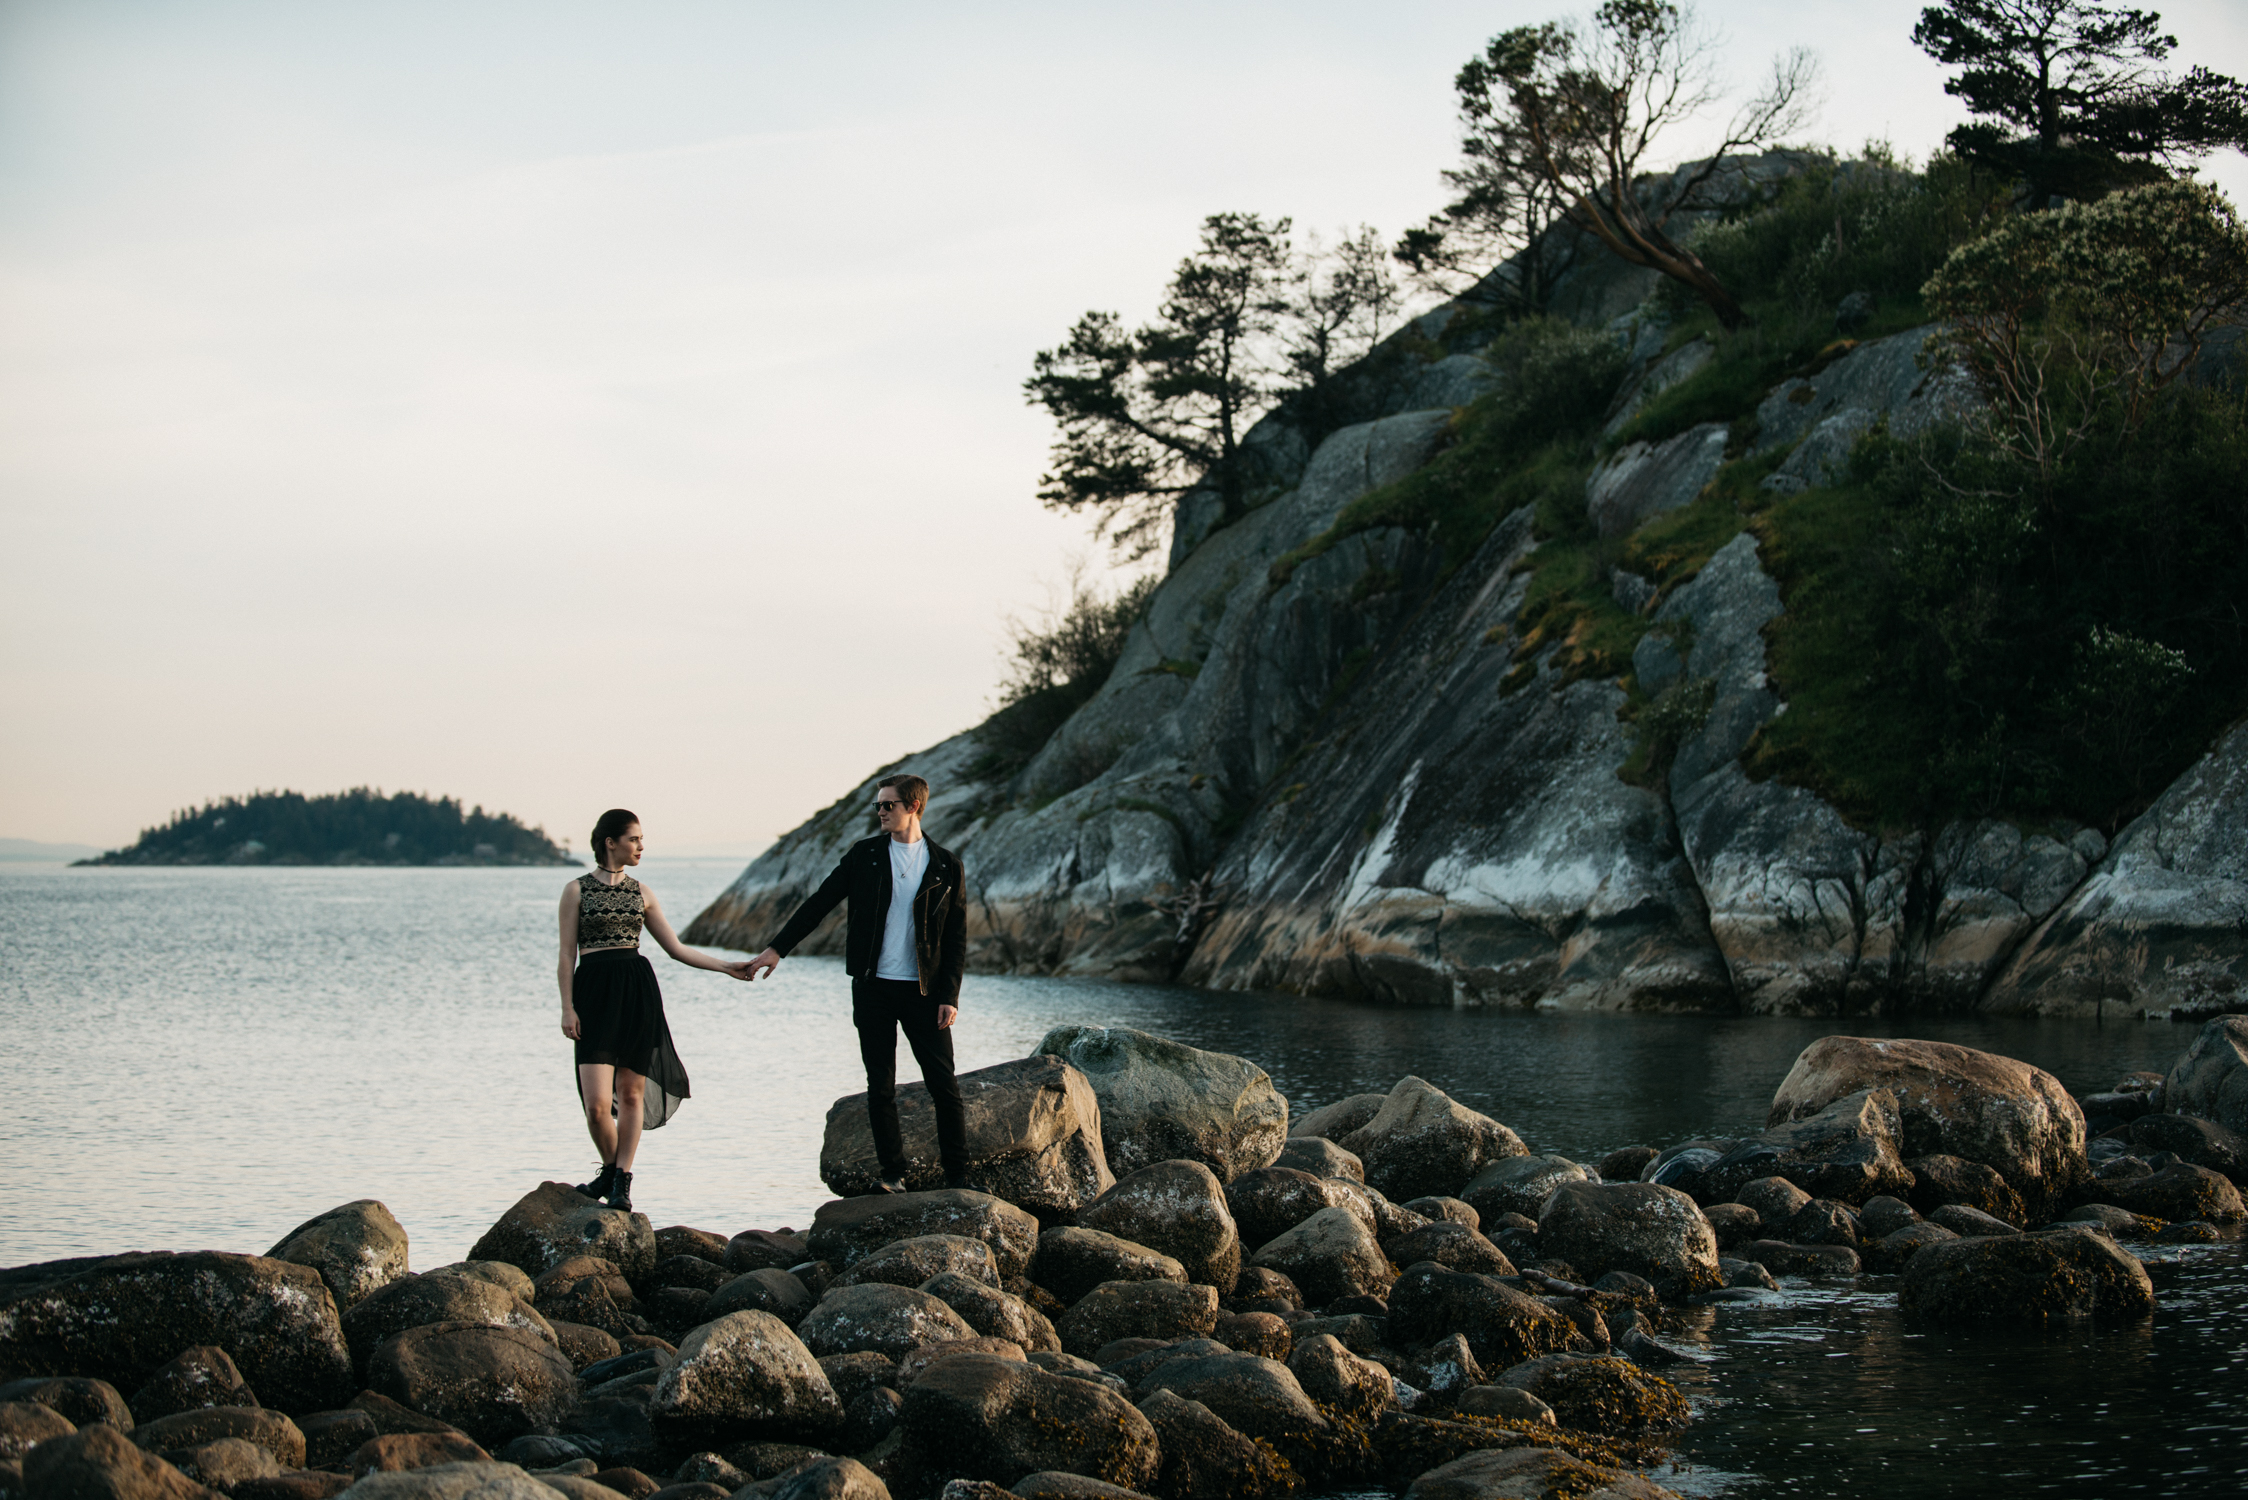 013_whytecliff_vancouver_bc_engagement.jpg